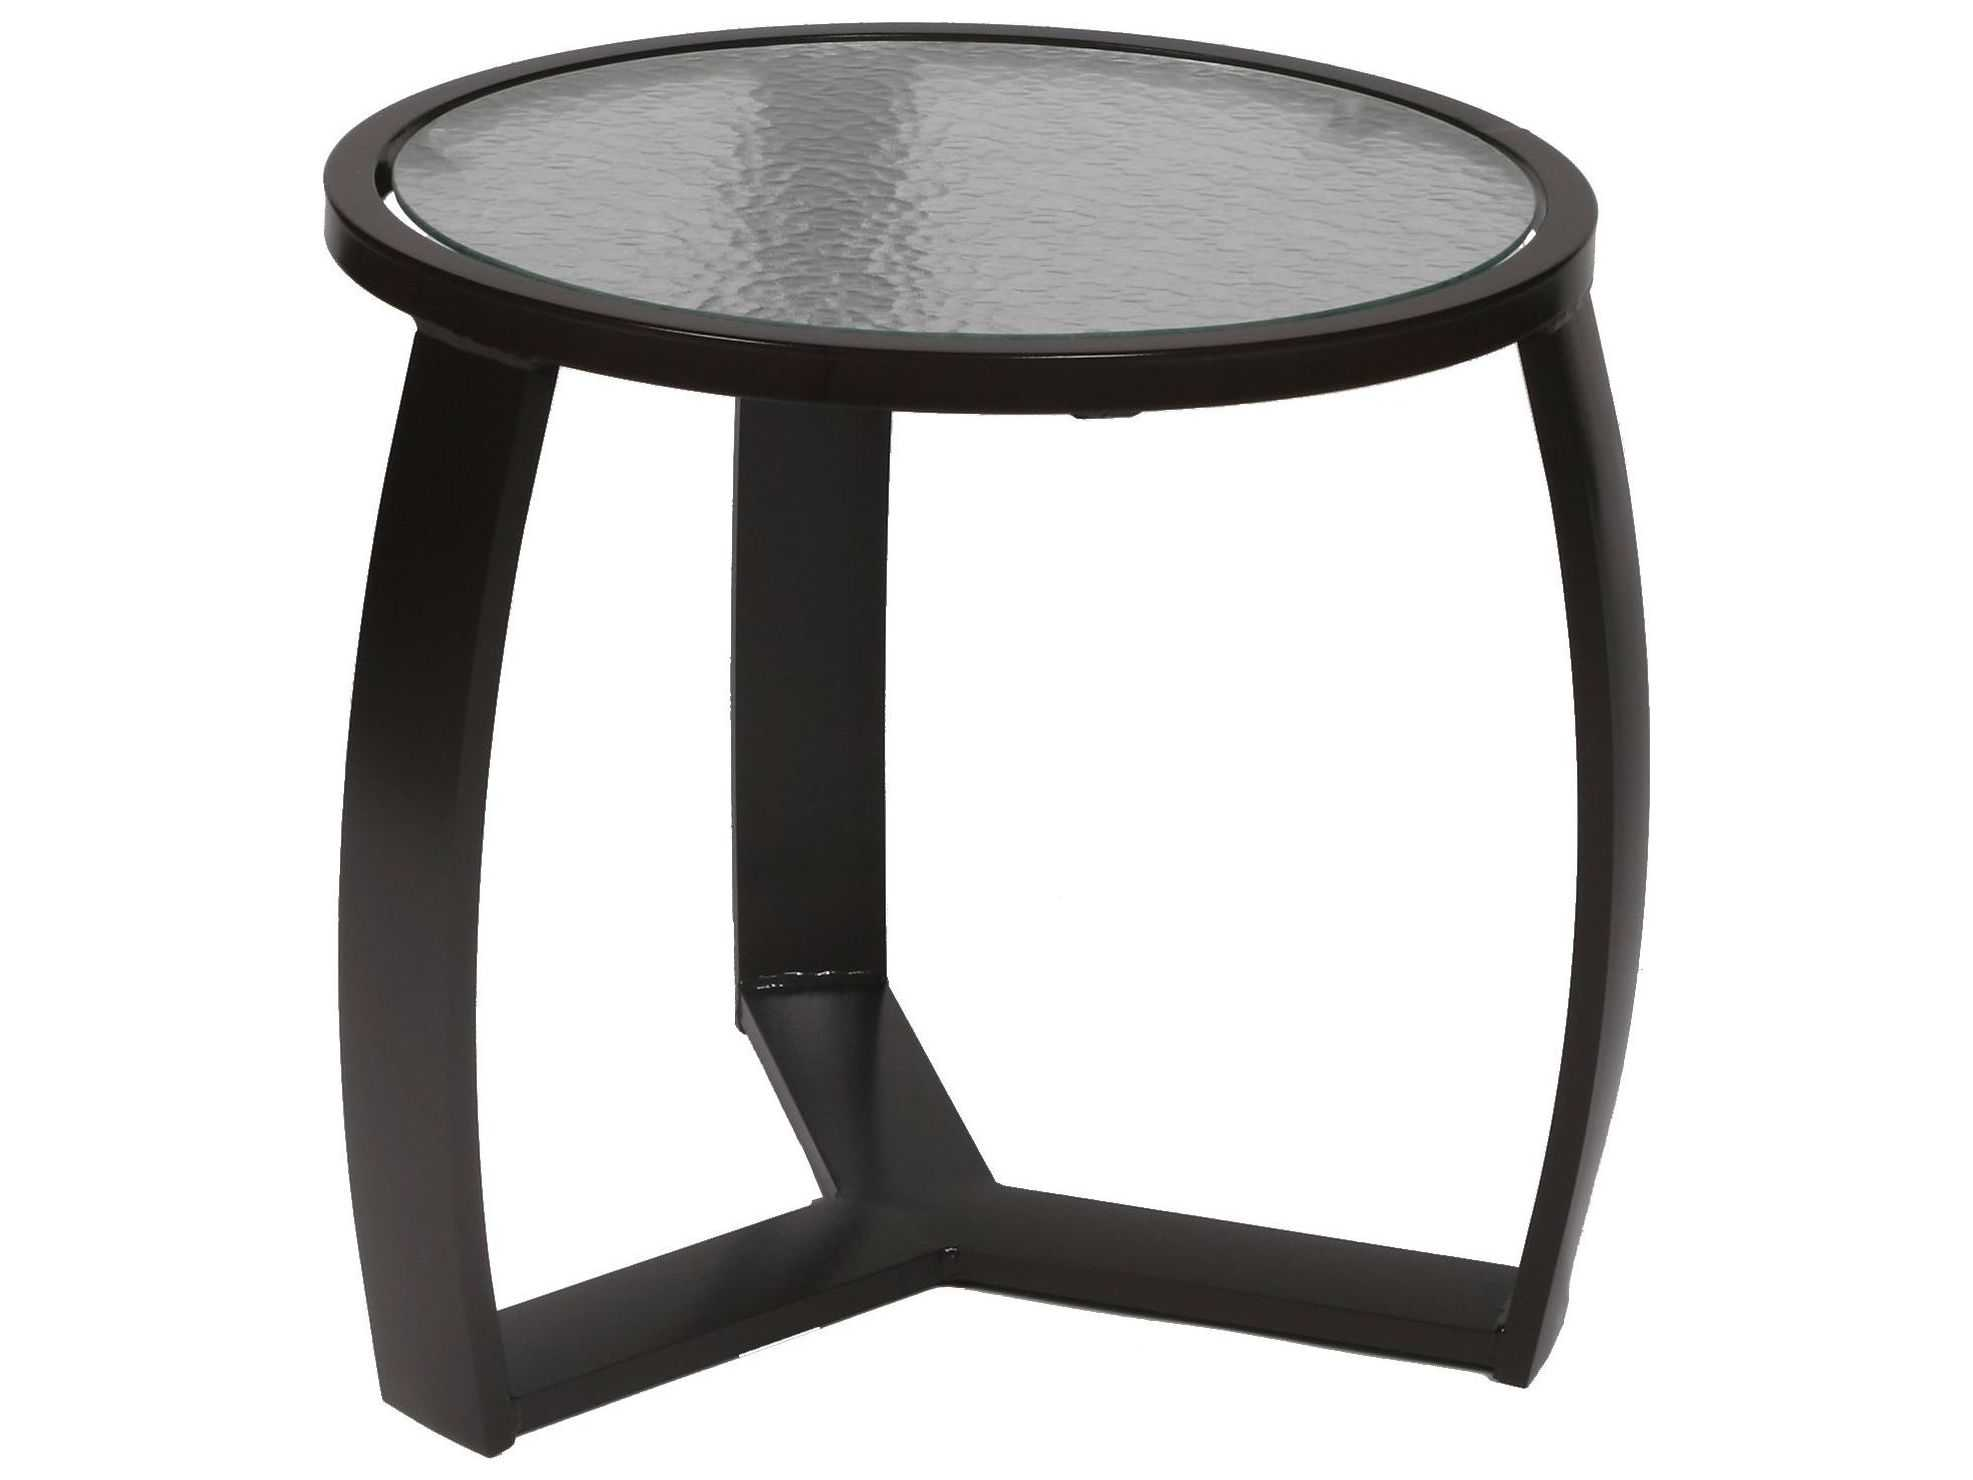 Suncoast Pinnacle Aluminum 22'' Round Glass End Table